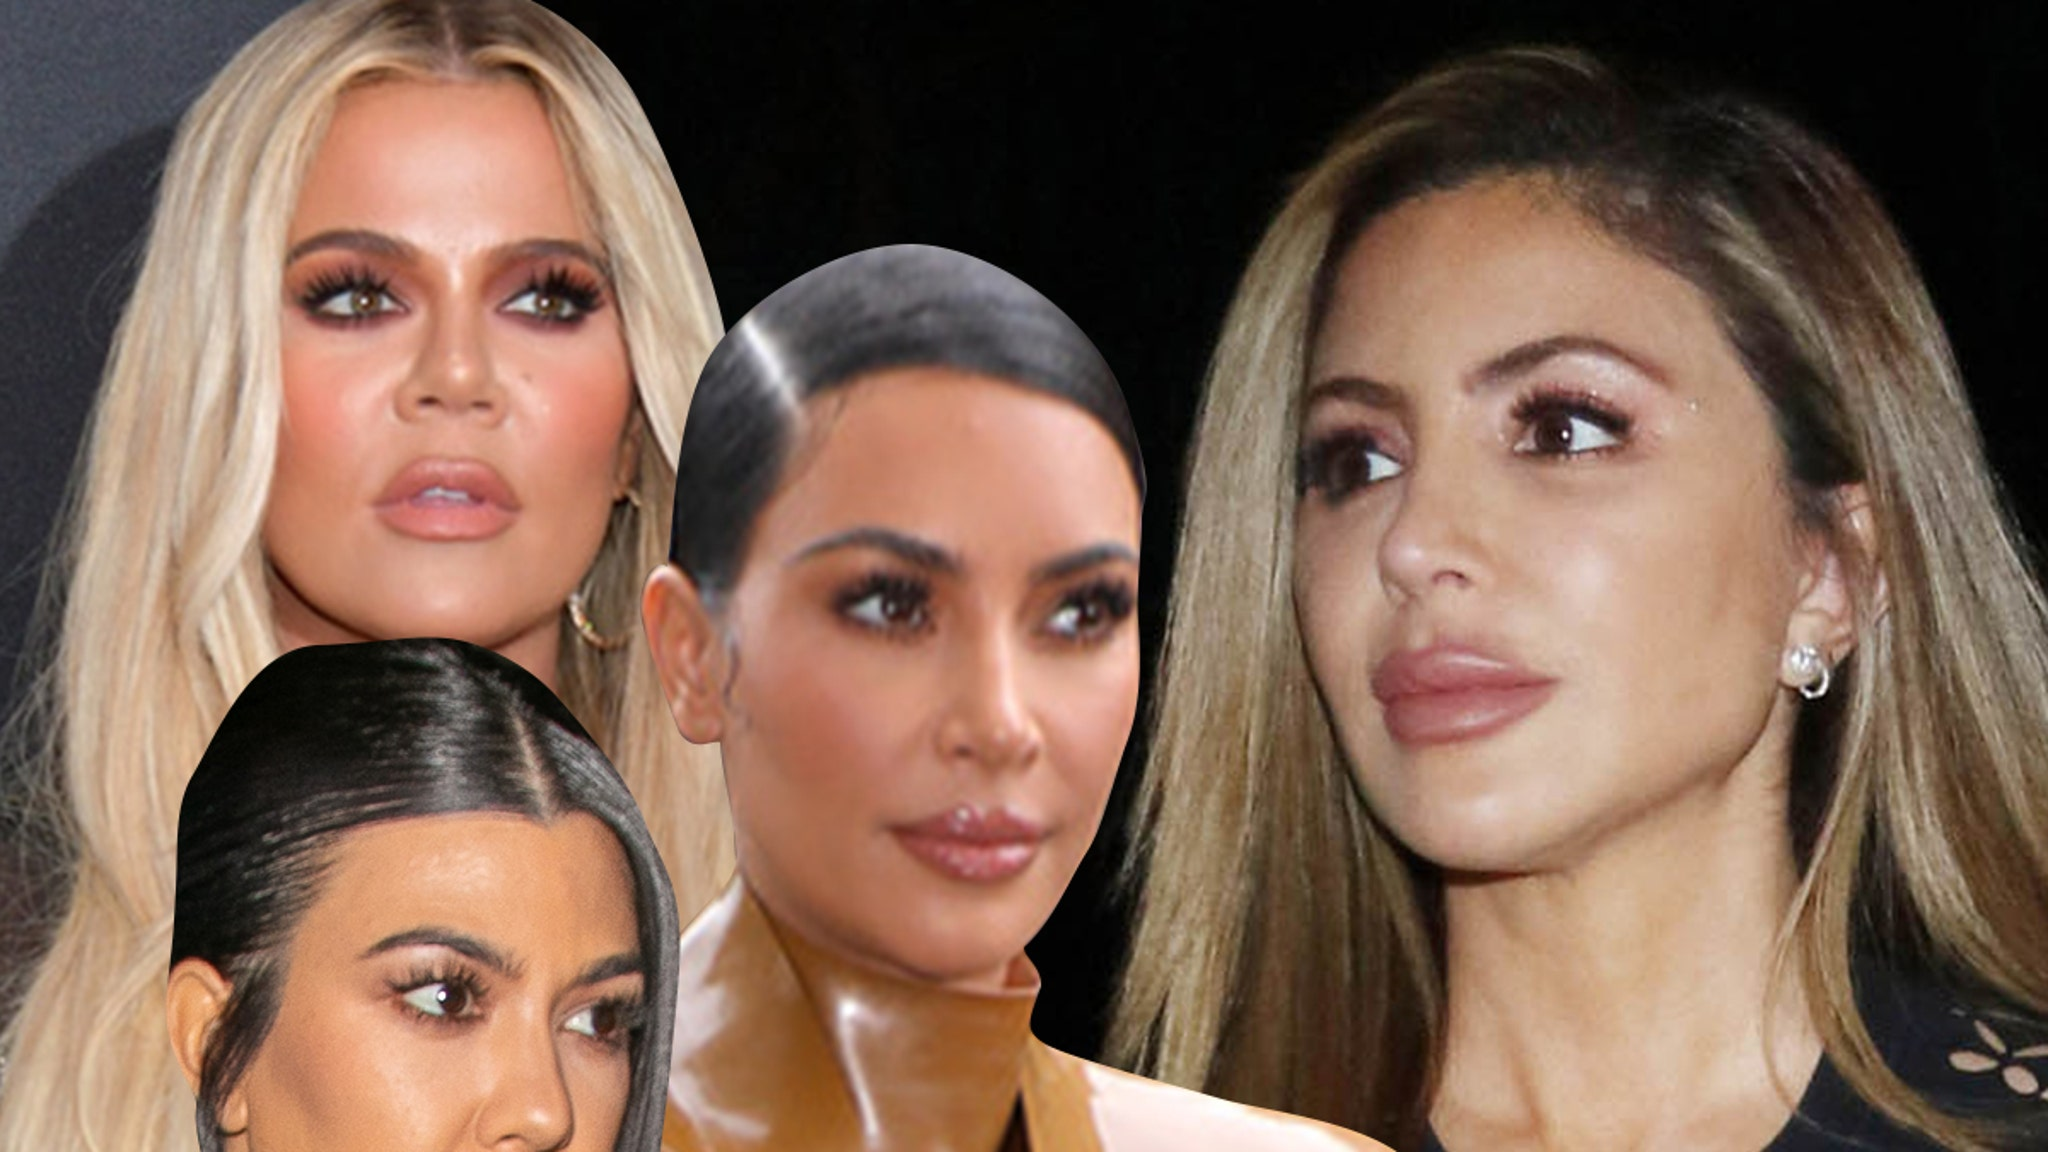 Kim Kardashian Unfollowed Larsa As They Grew Apart ... No Drama or Bad Blood